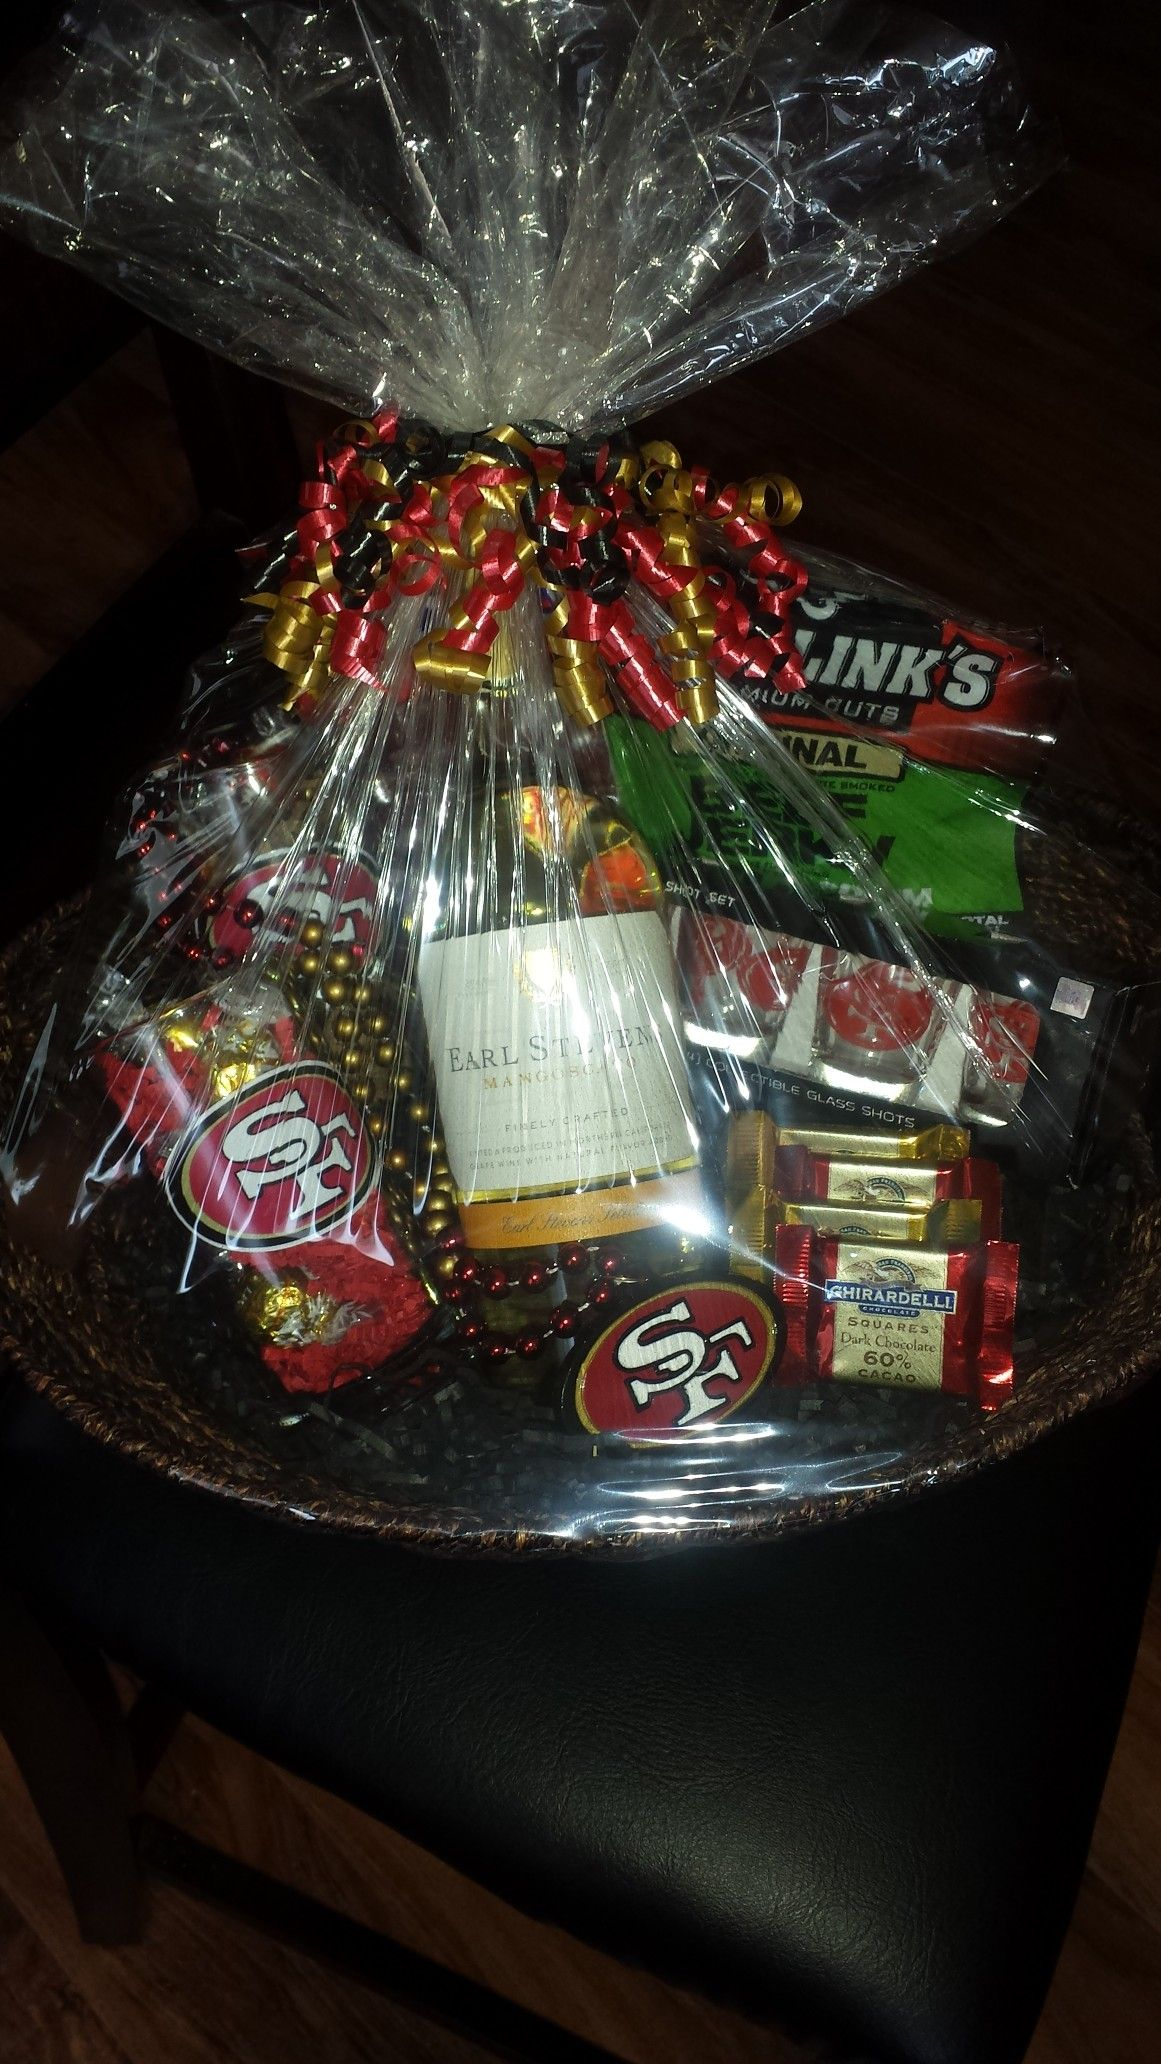 49ers fan gift basket 49ers gifts 33rd birthday gift